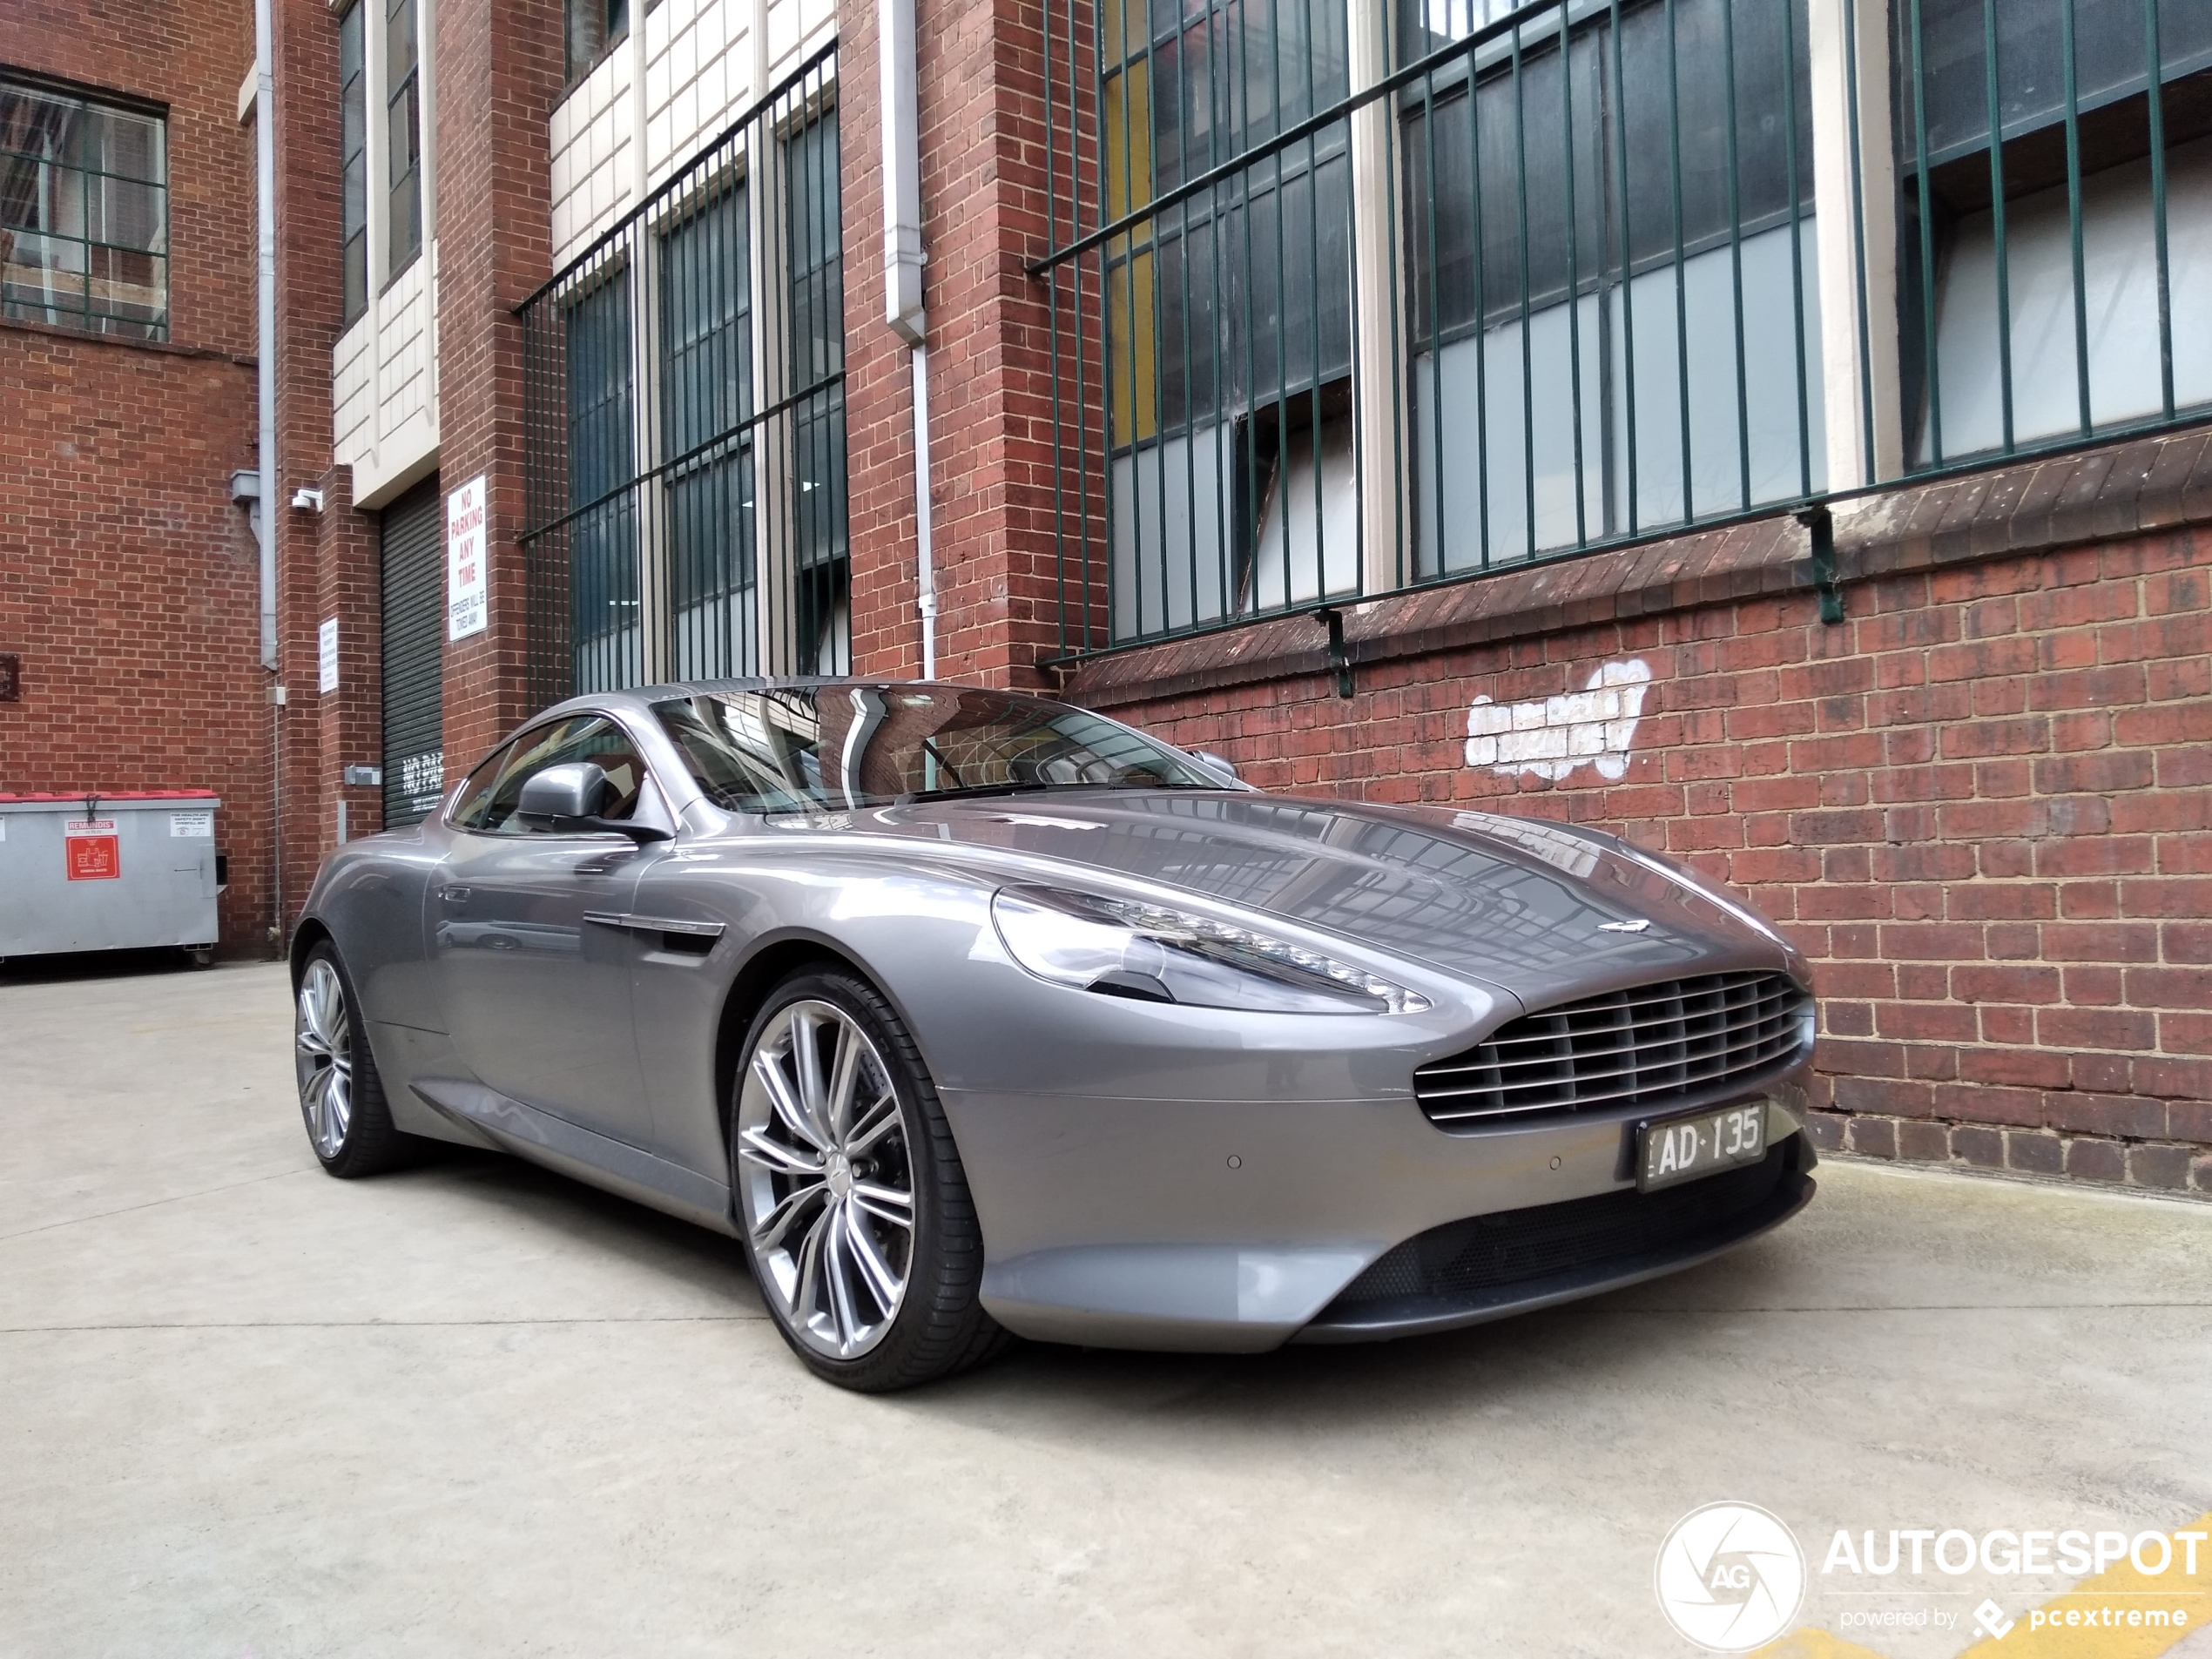 Is de Aston Martin Virage meest onbekende Aston Martin?